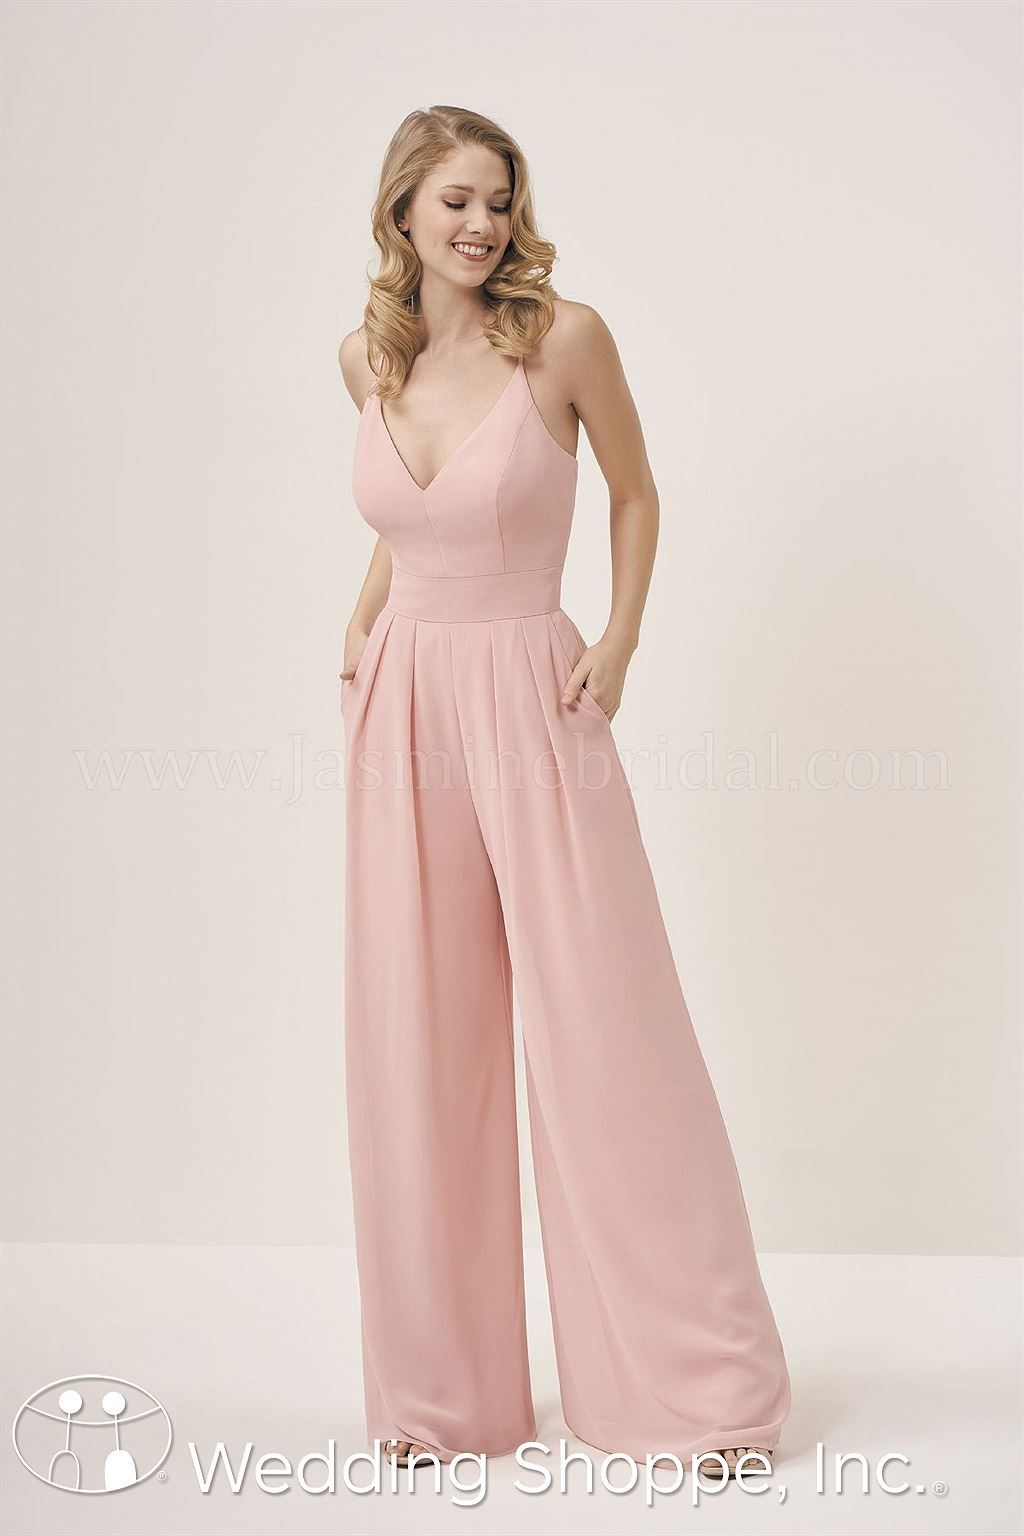 Jasmine Bridesmaid Dress P196053 | Enterizo, Mono y Vestiditos